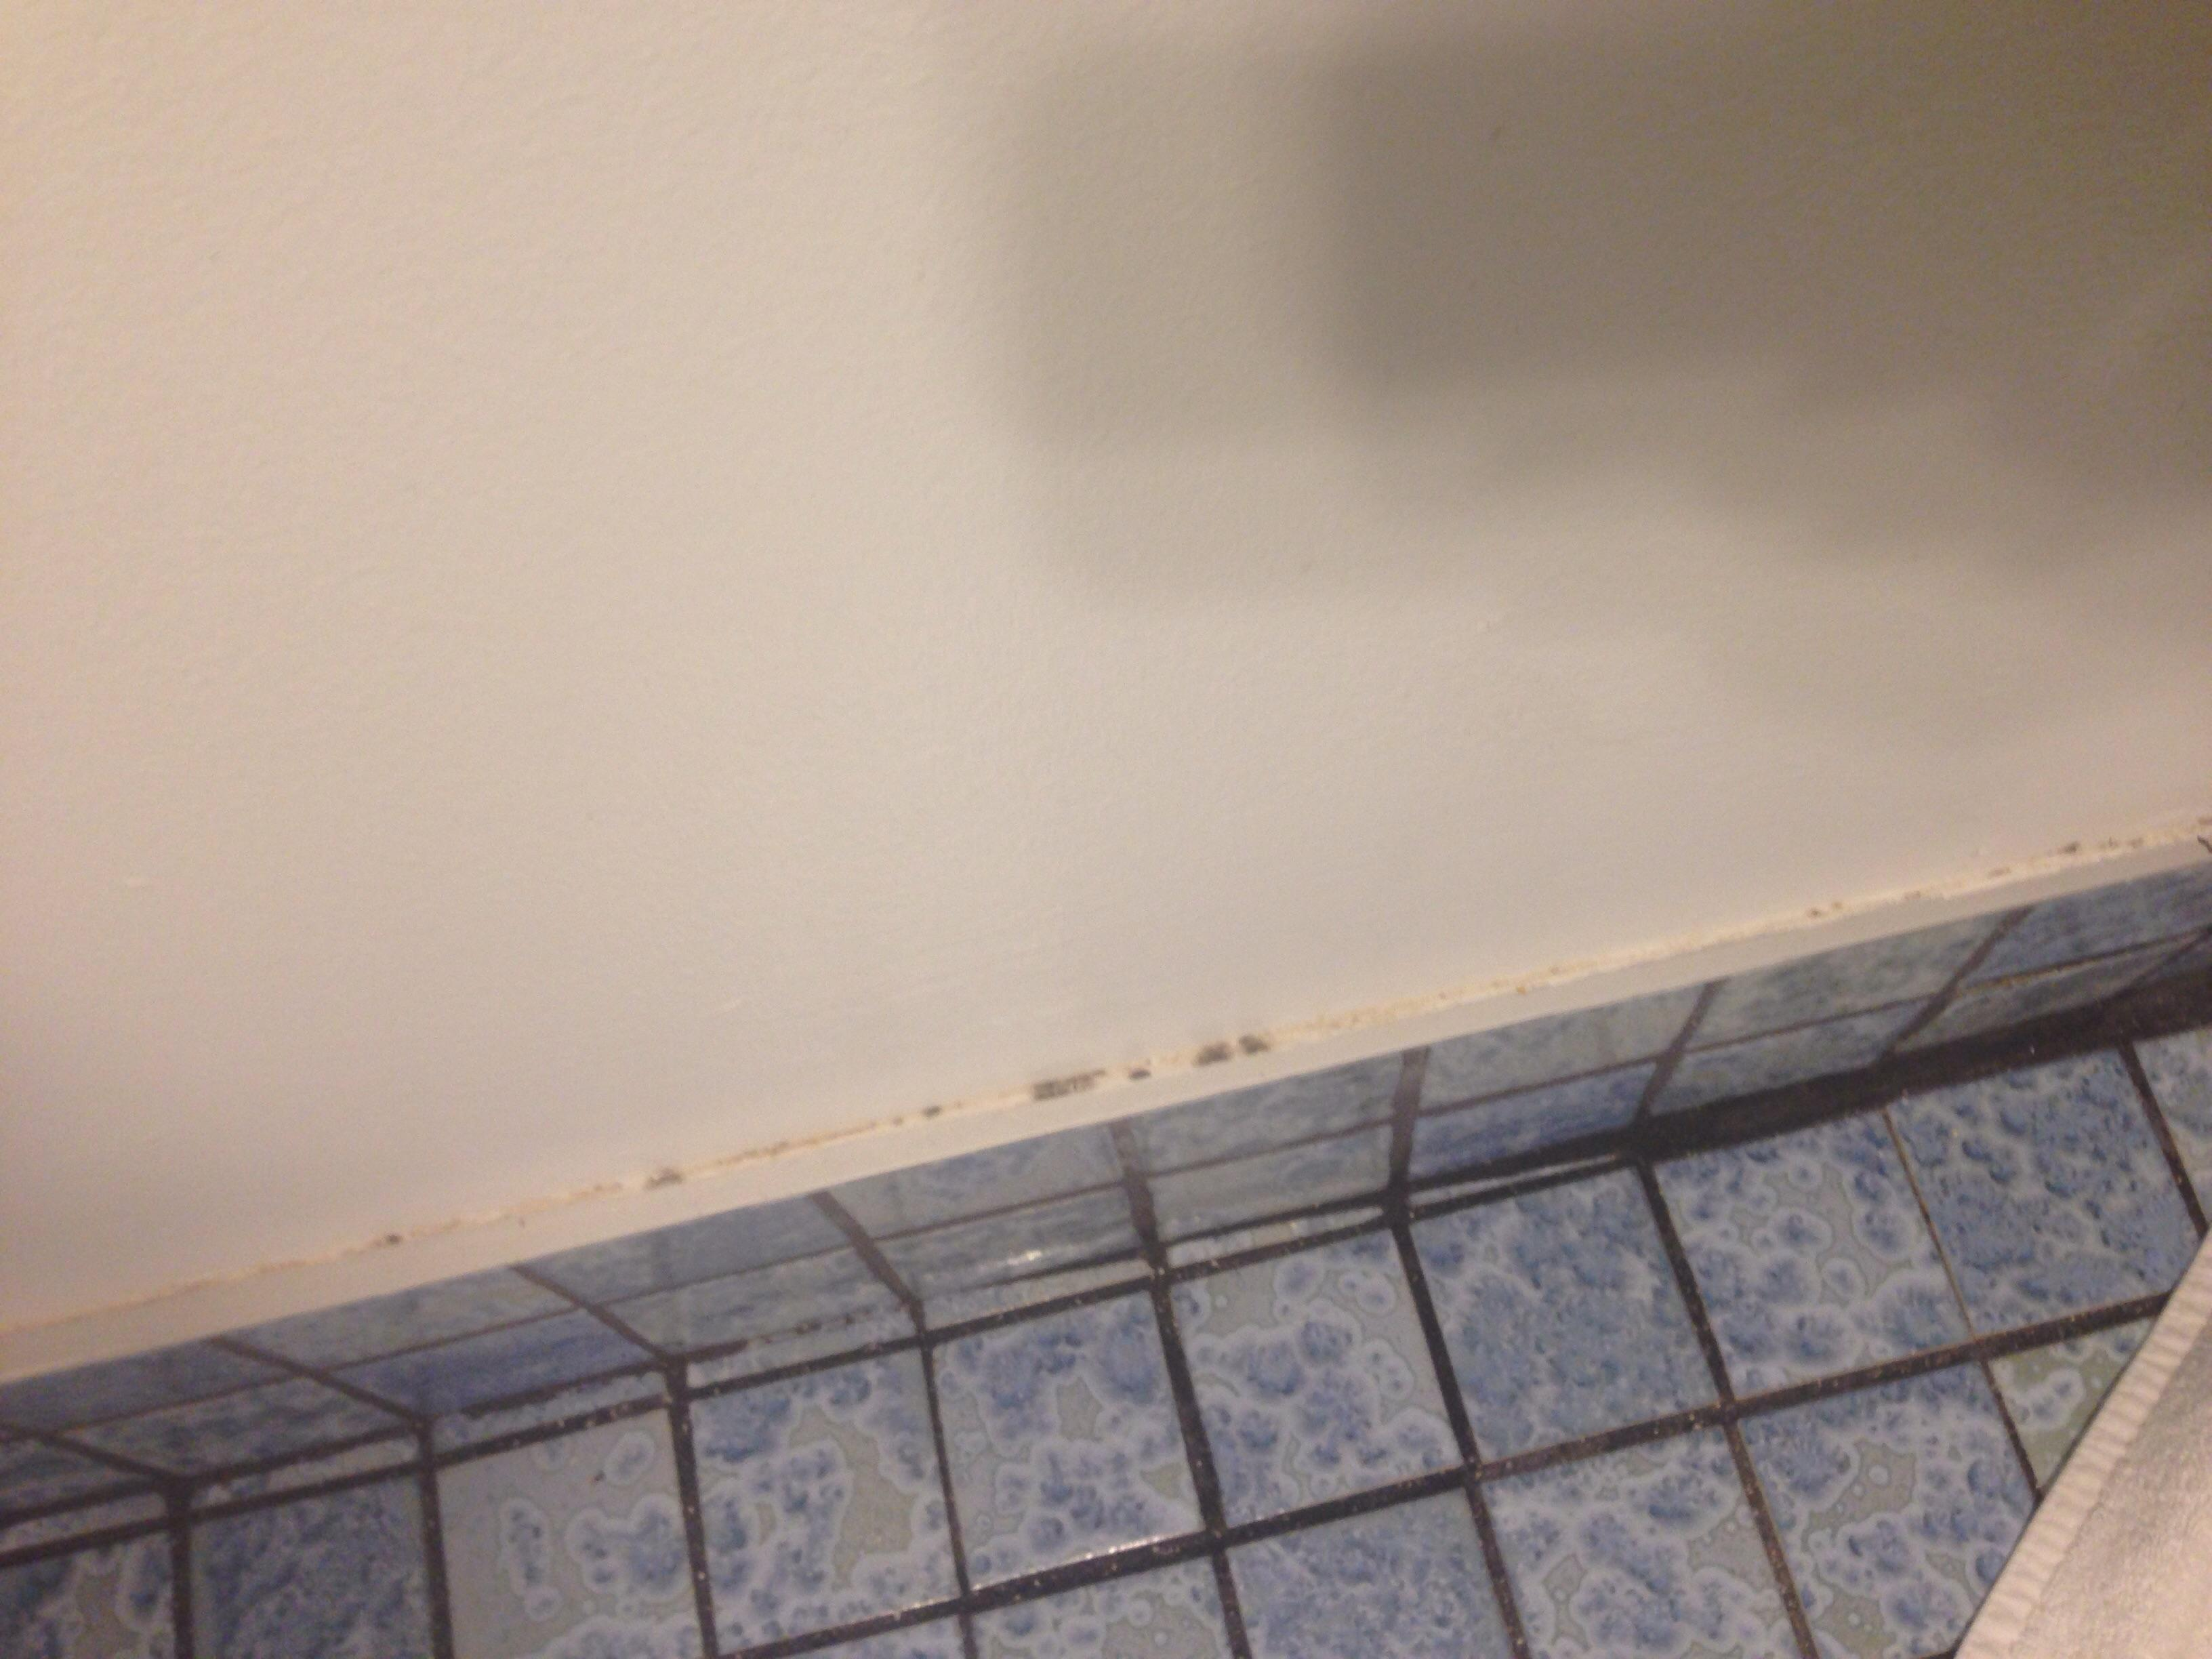 Stains behind bathroom door.